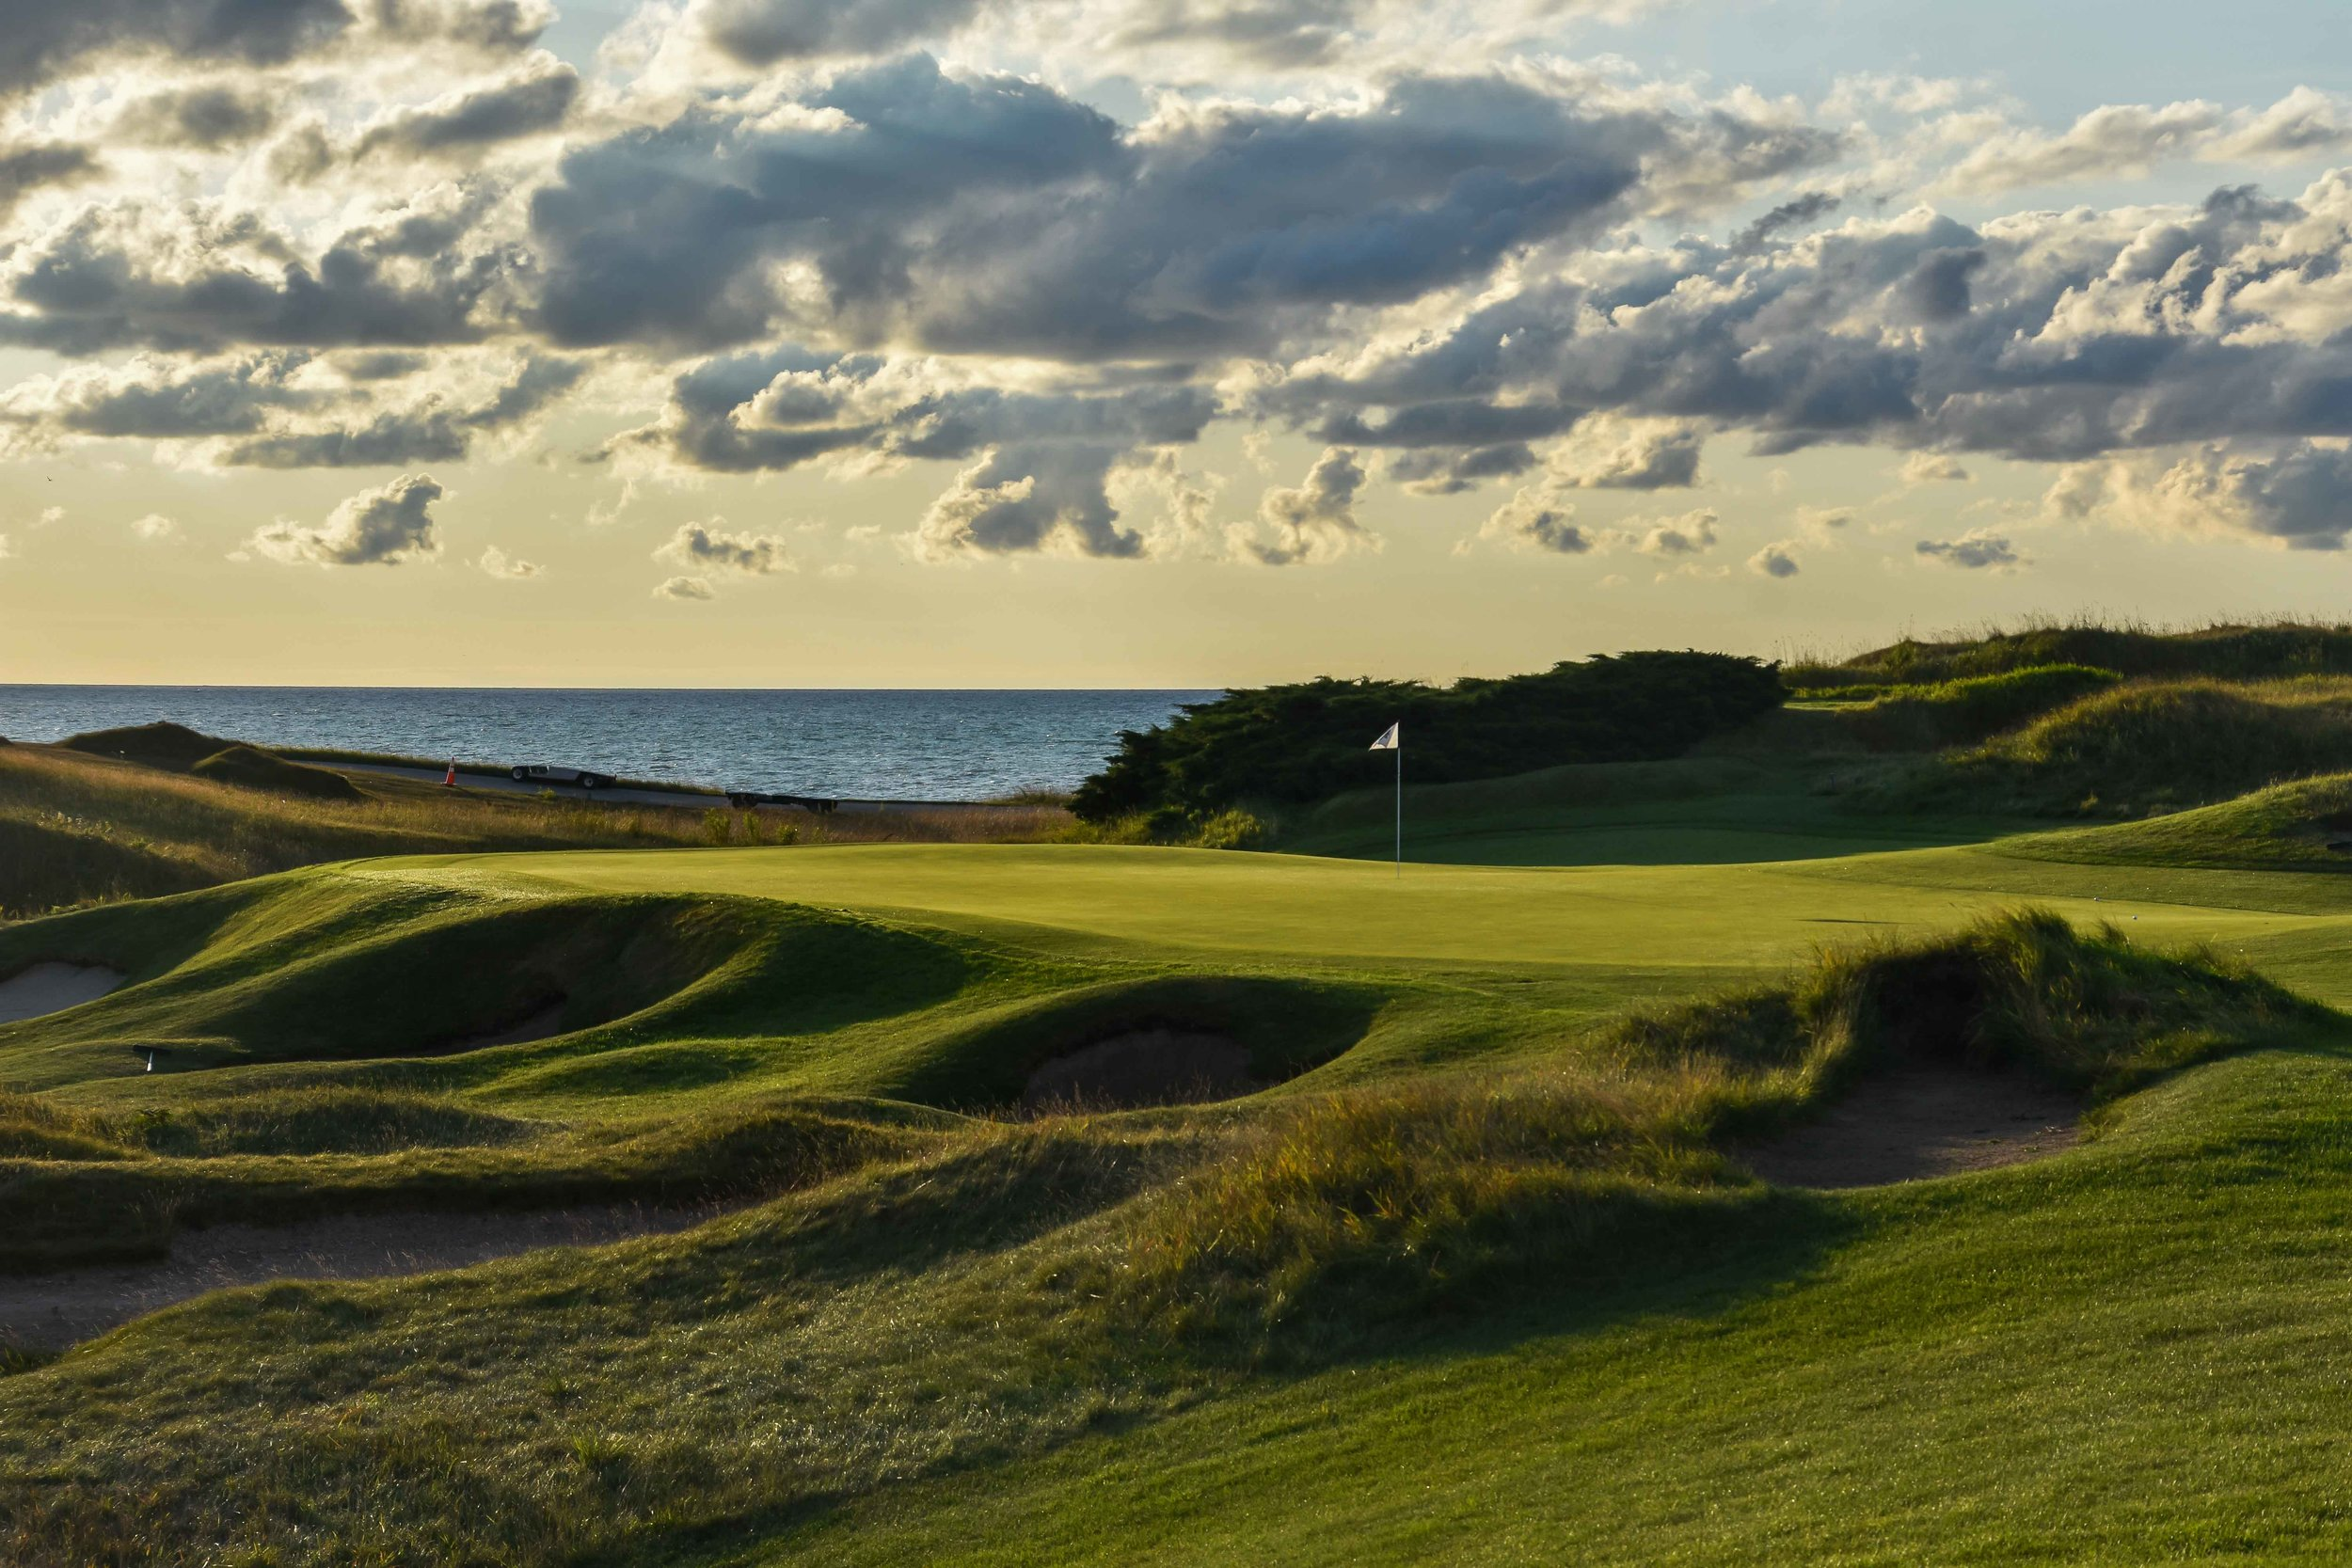 The first hole at Whistling Straits is one of my favorites. With so many inspiring holes, this one is often overlooked.